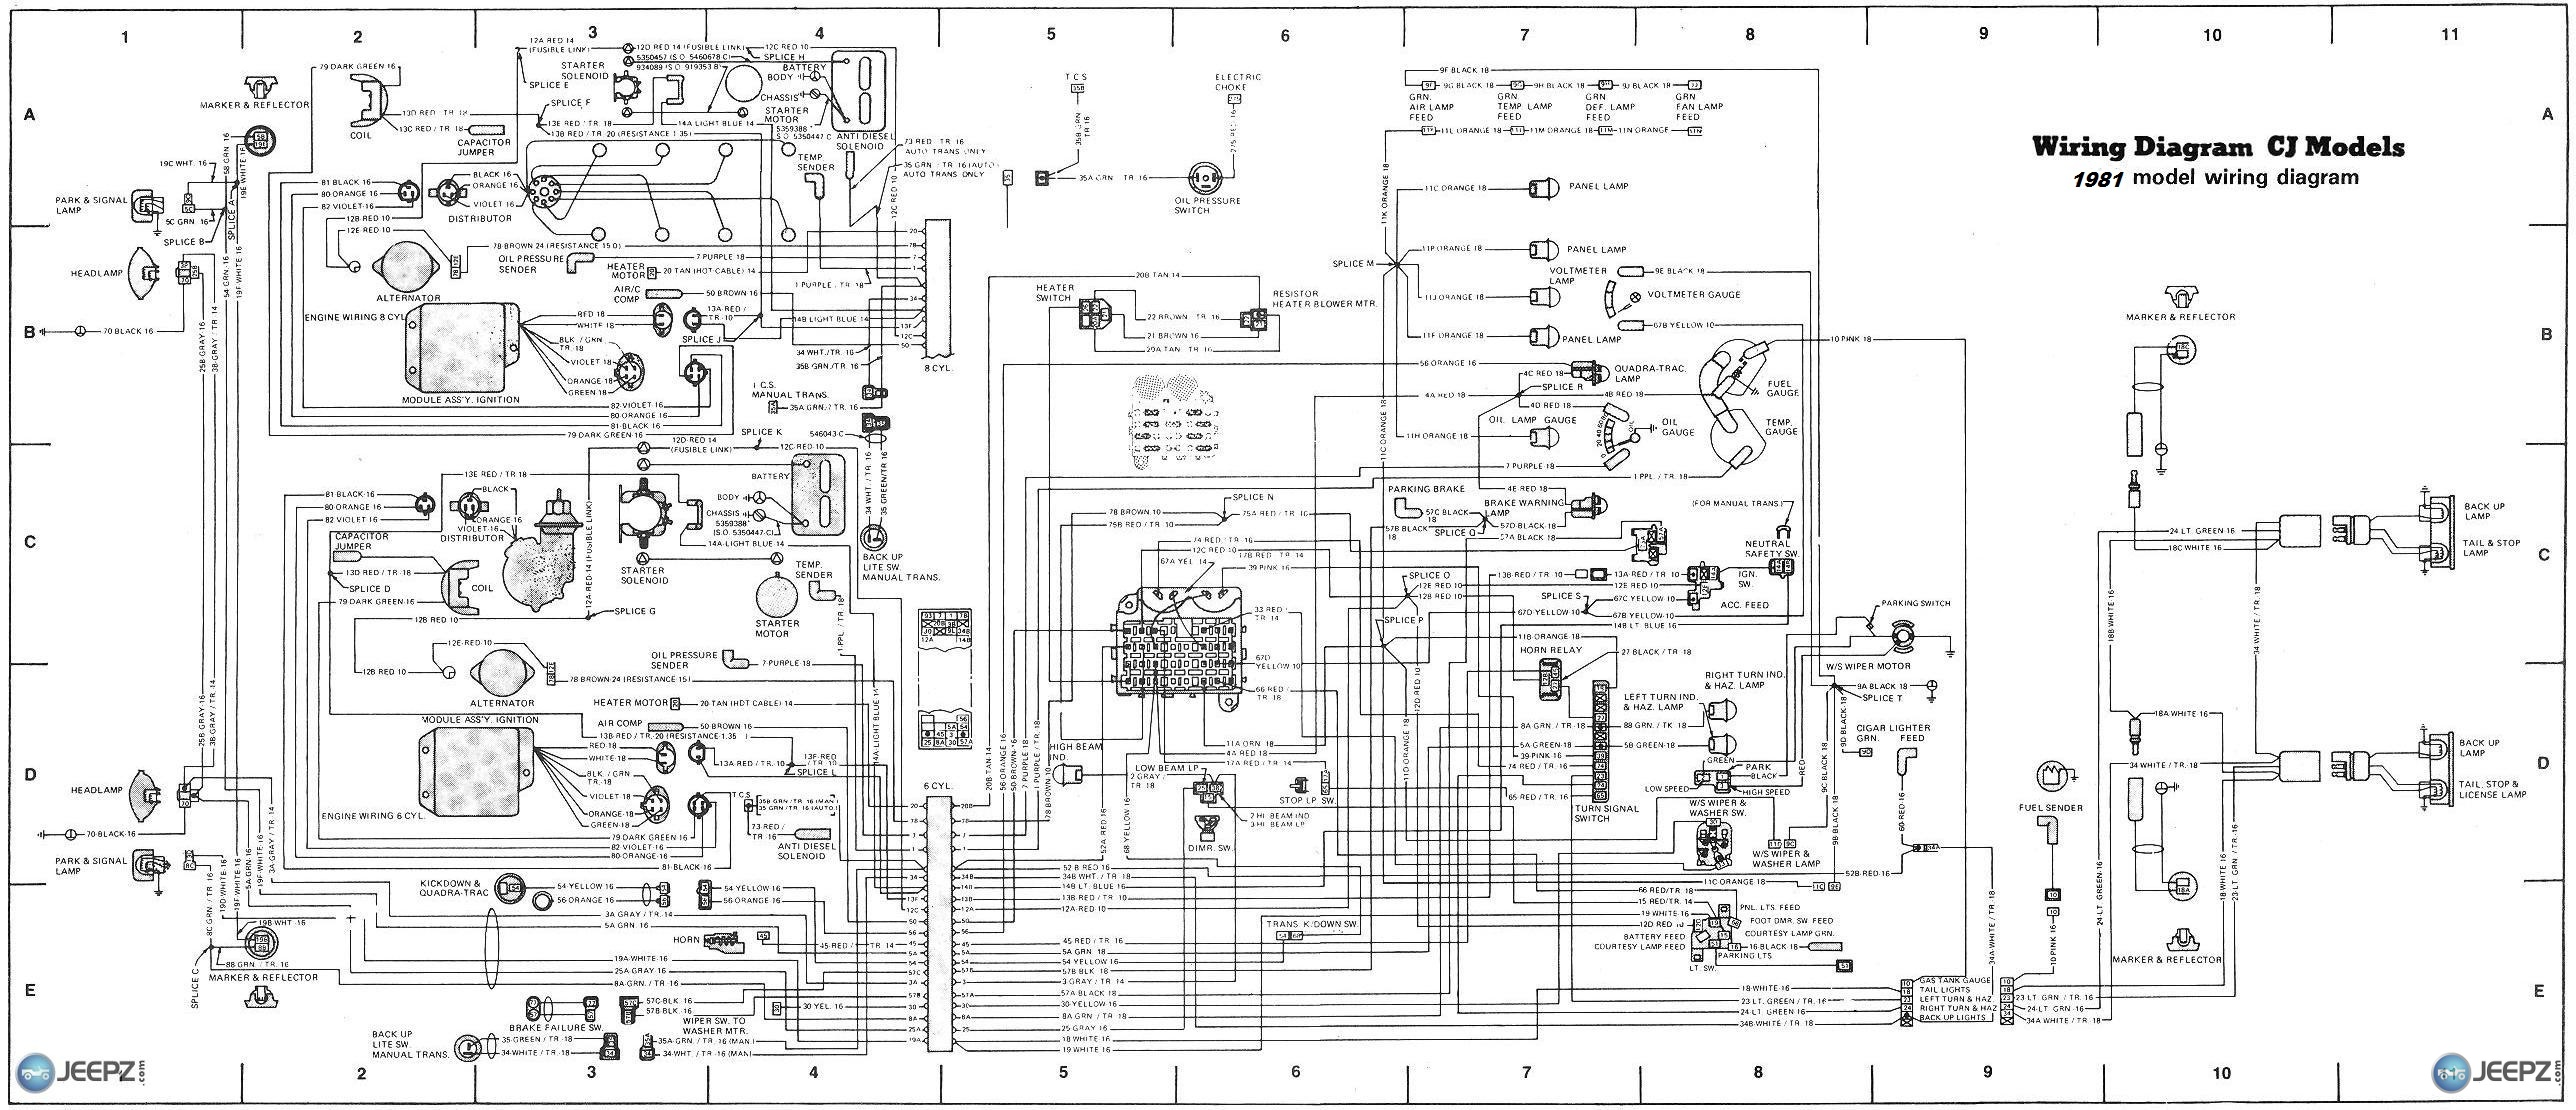 7993d1301845049 cj 7 wire diagram cj wiring diagram 1981 1978 jeep cj7 wiring diagram electrical wiring for 78 jeep cj5 cj3a wiring diagram at gsmportal.co